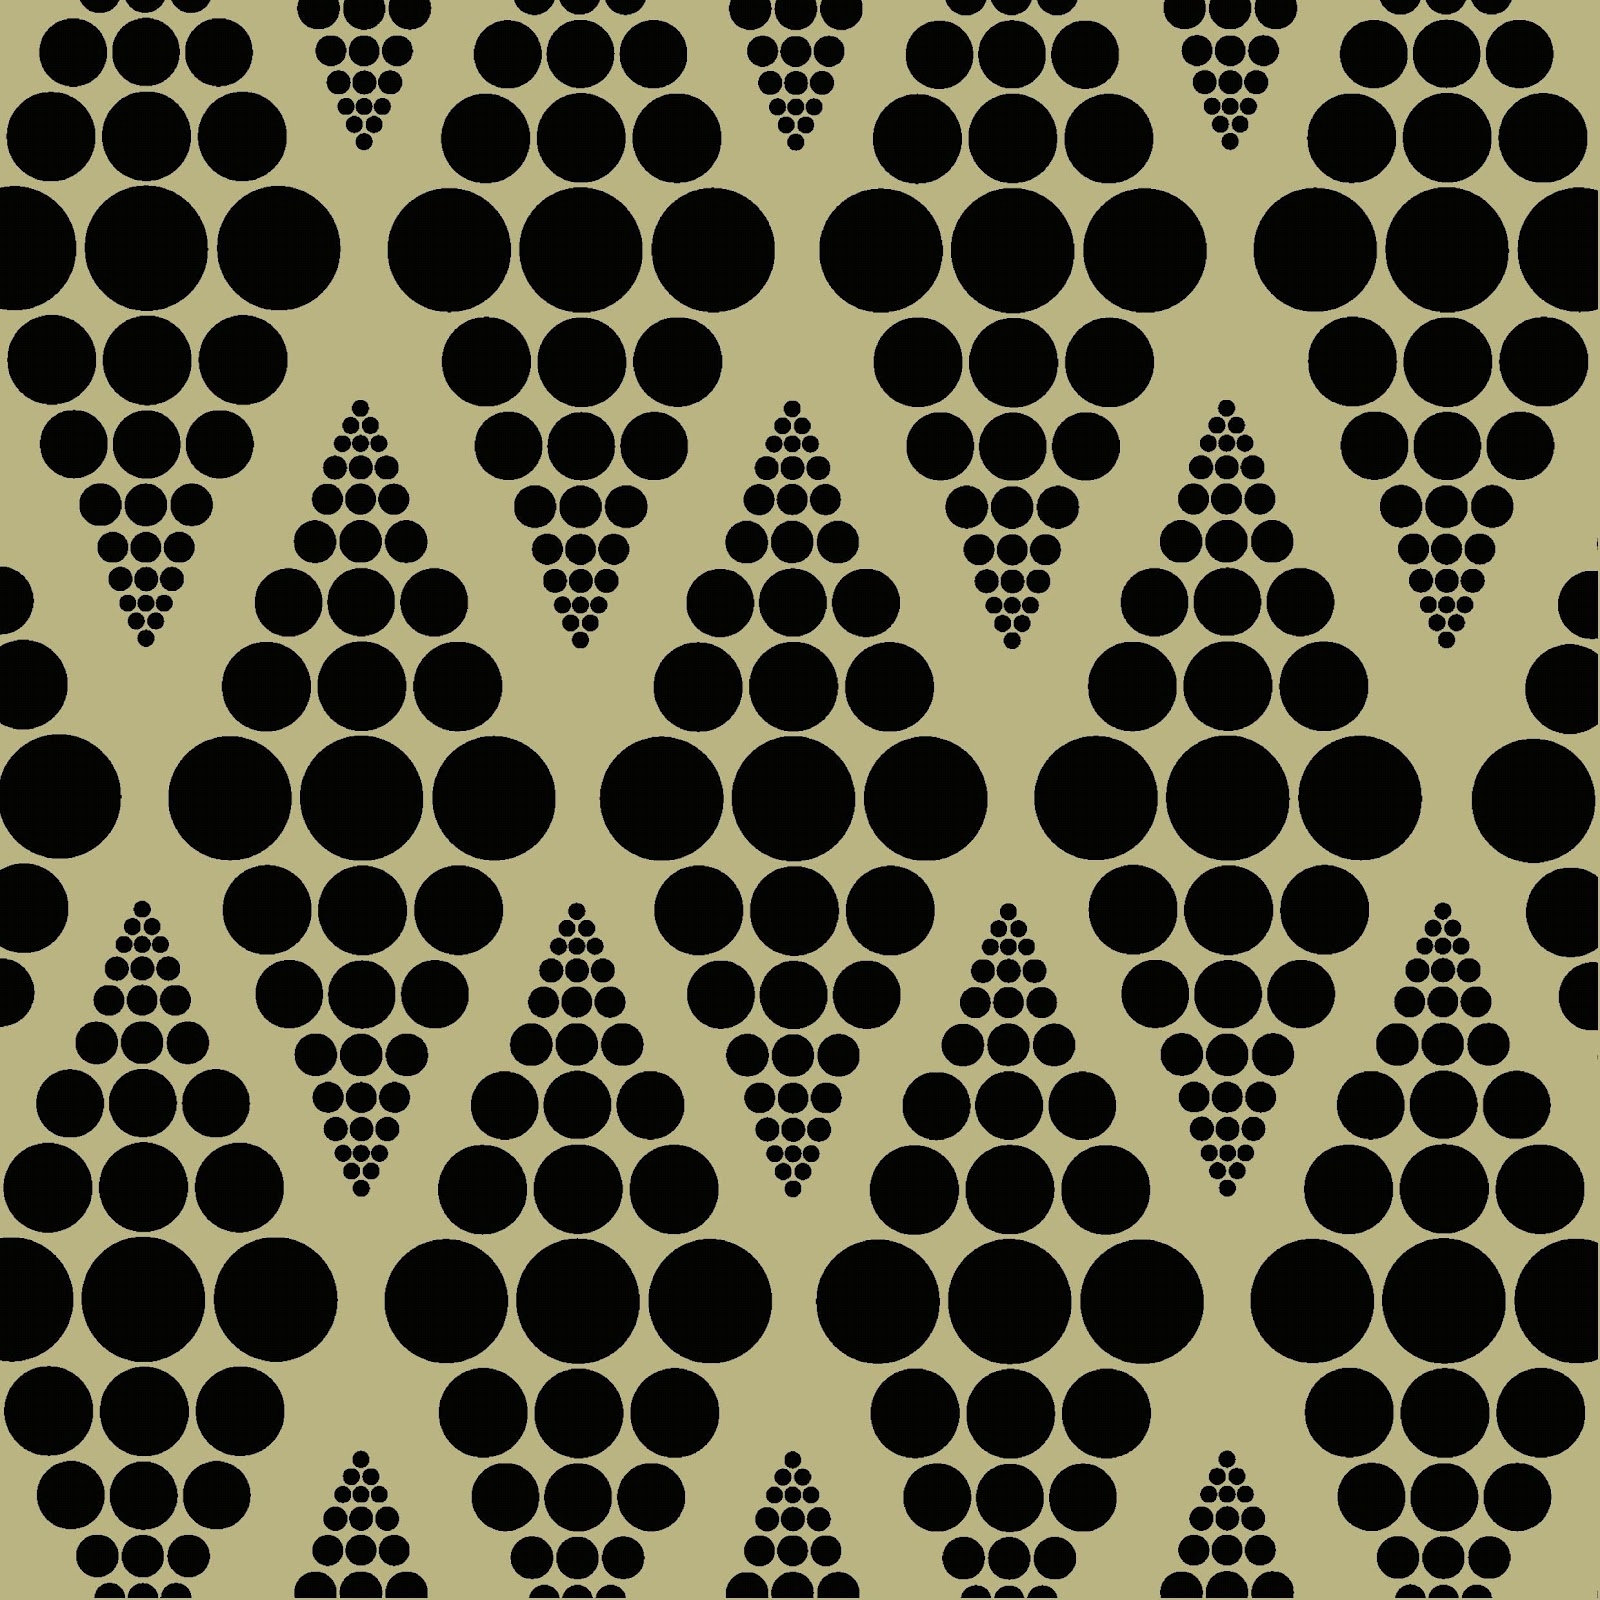 Geometric Simple Patternt Textile Design Inspiration ...